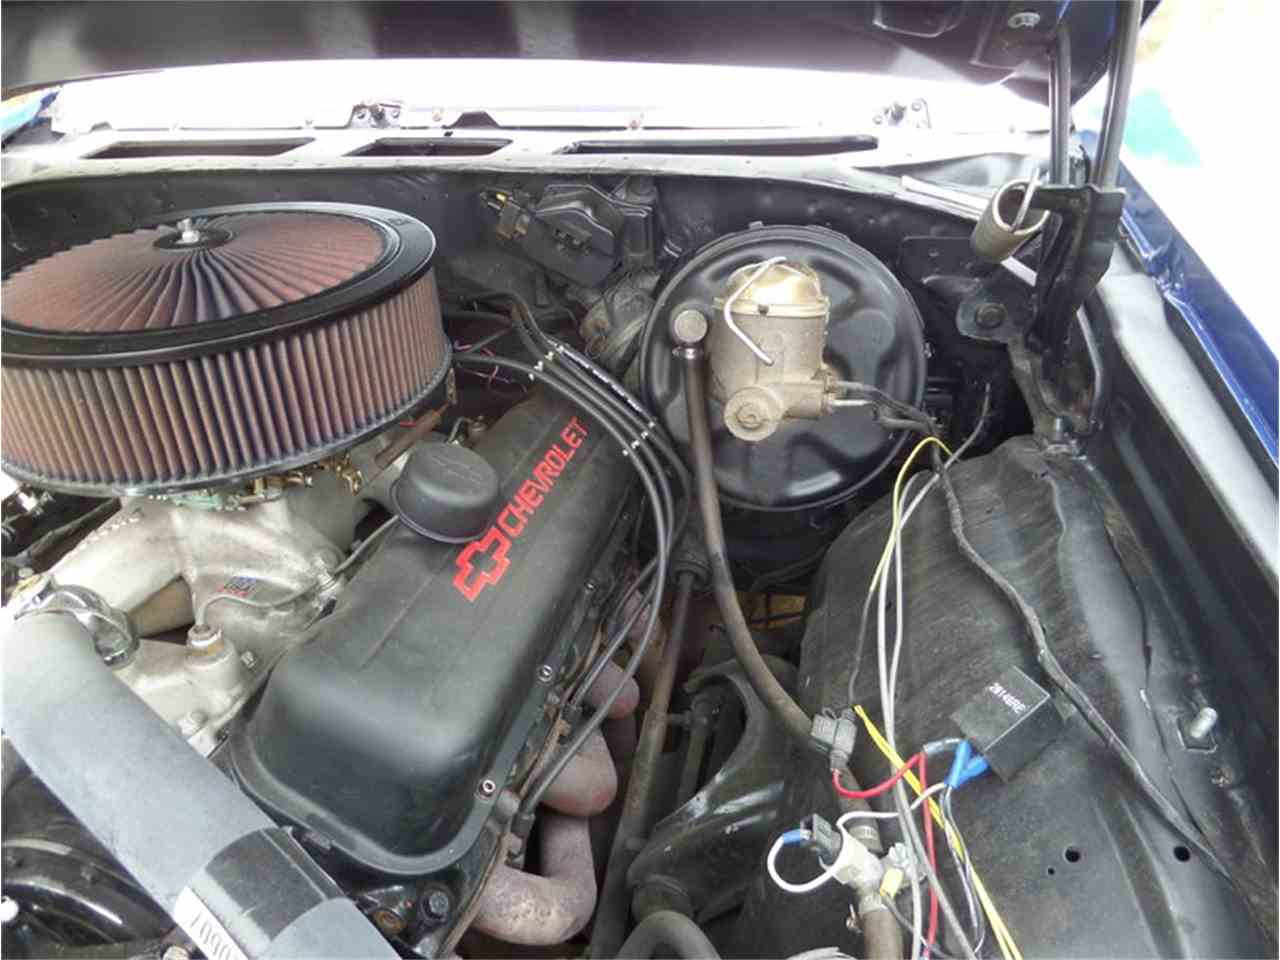 Chevelle blue metallic paint car pictures car canyon - Classic Car Inspections By Classic Car Experts